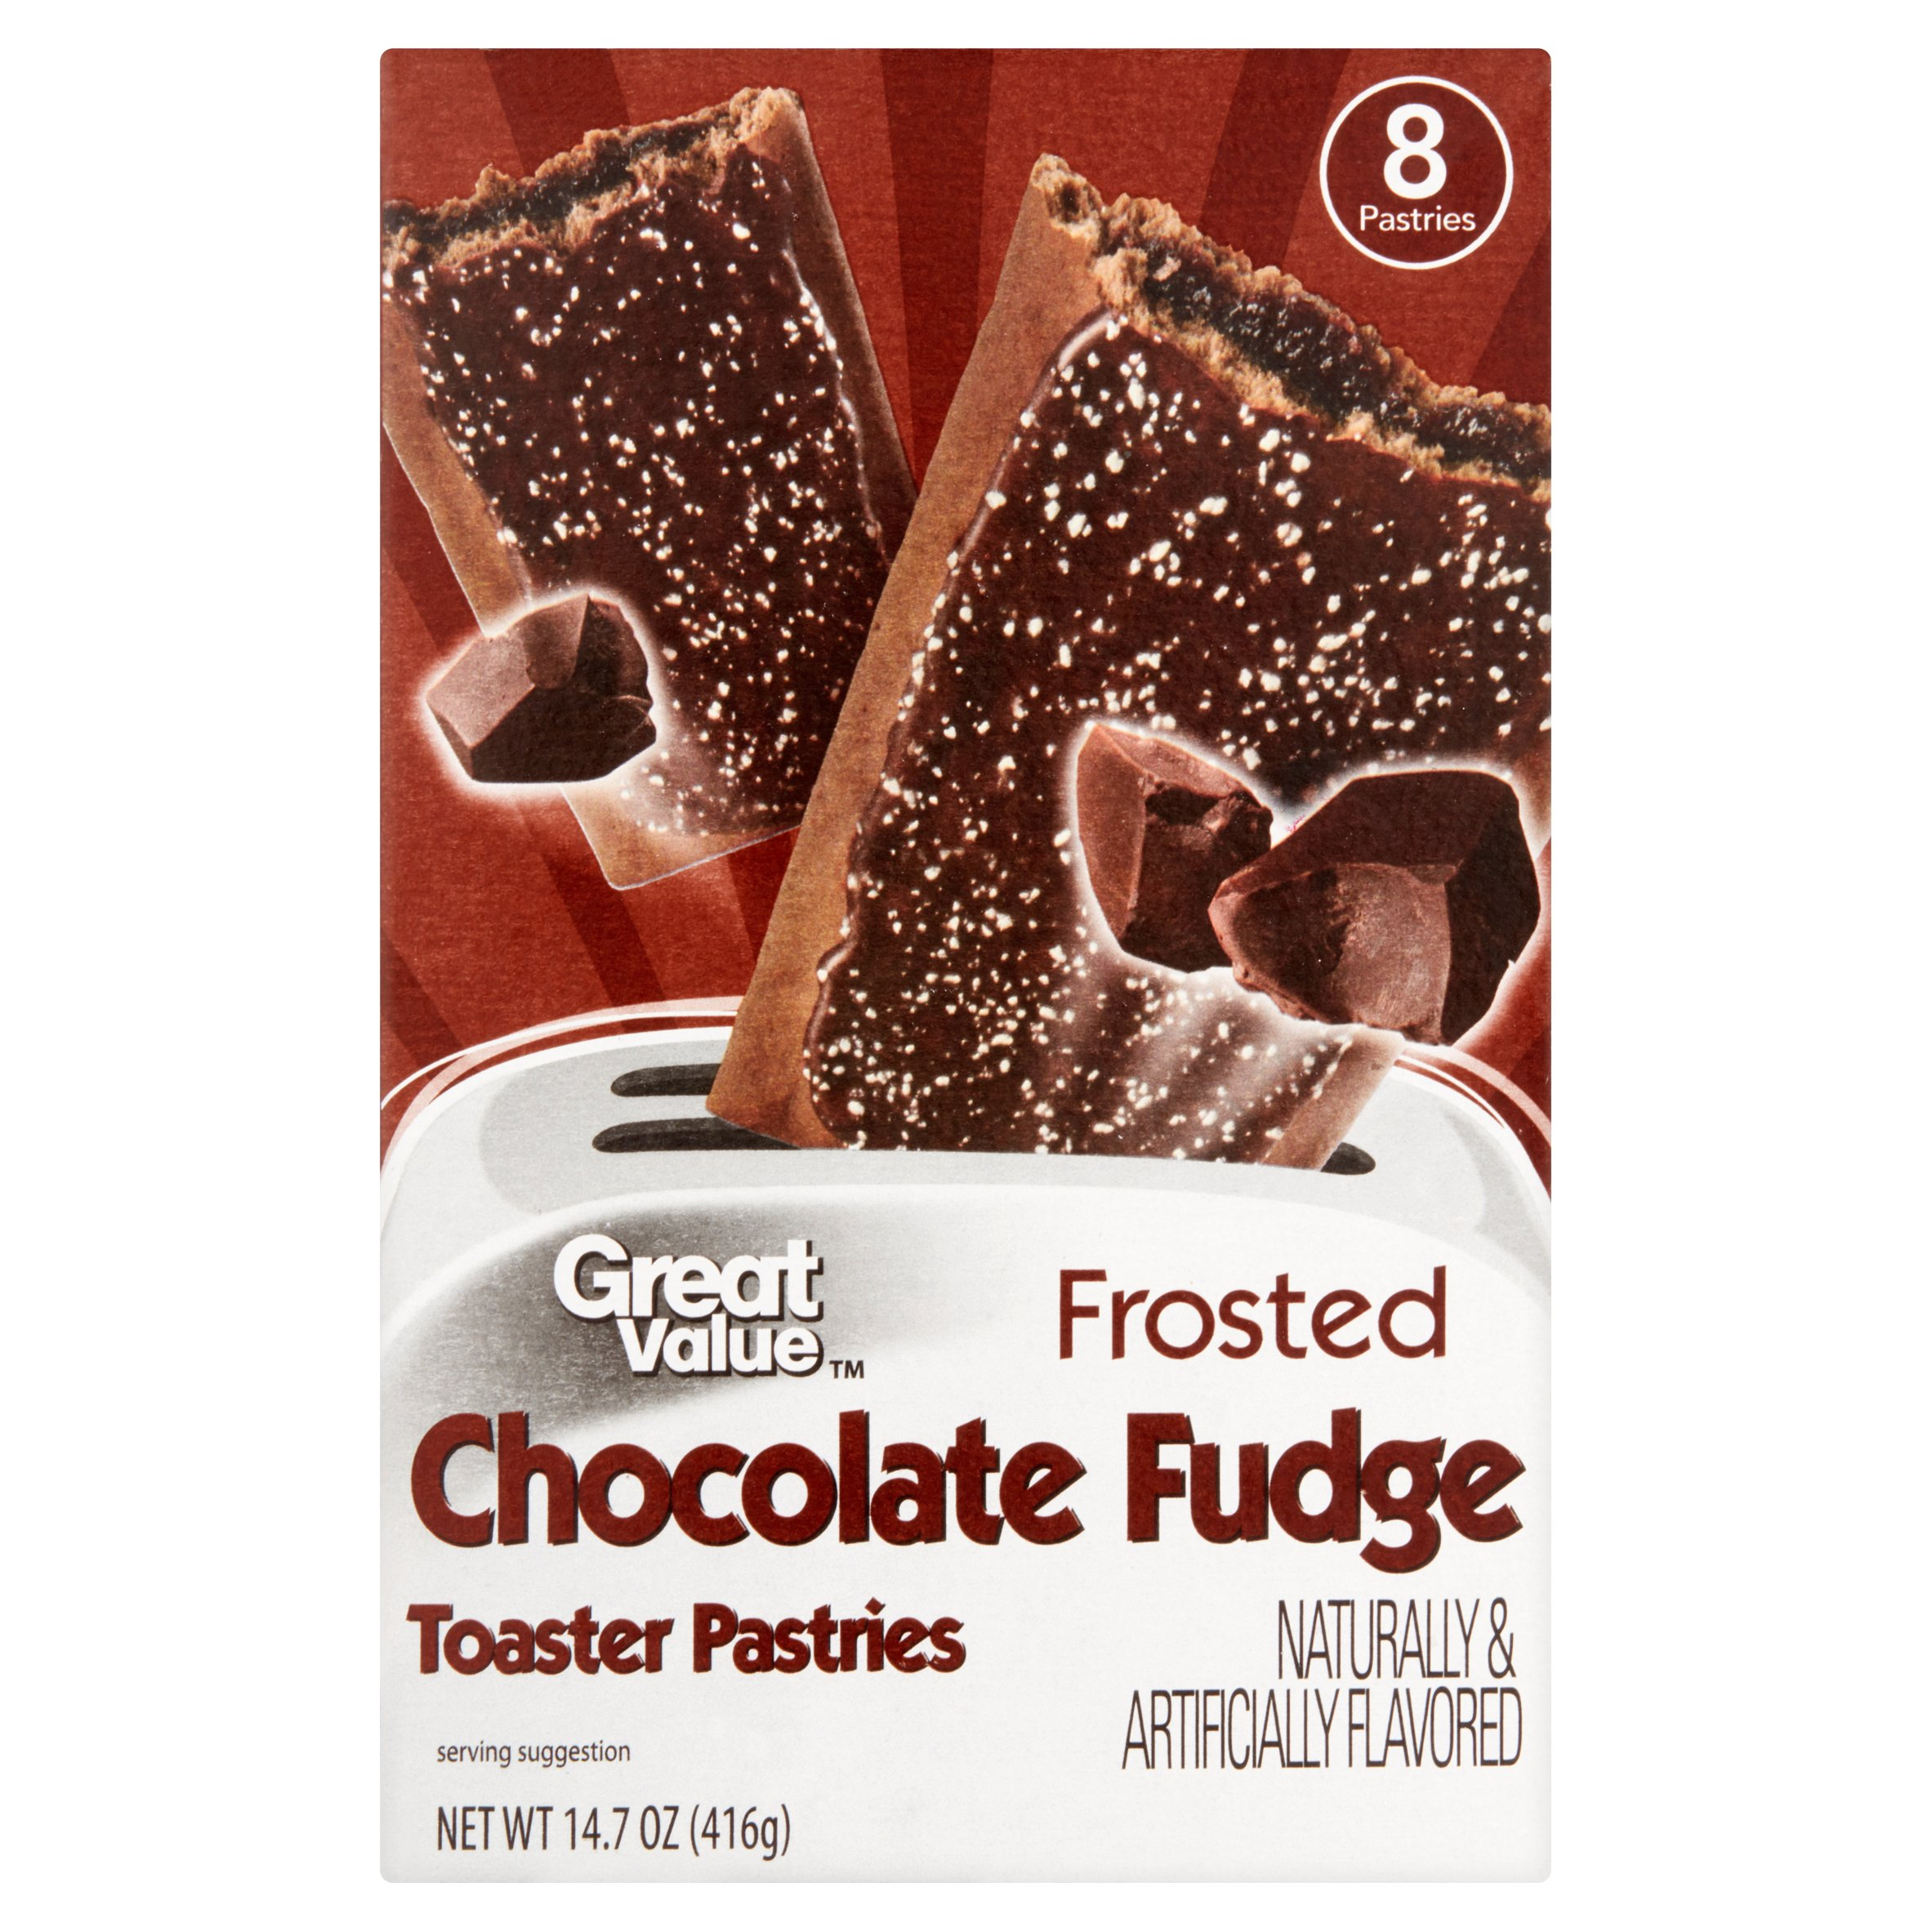 Great Value Frosted Toaster Pastries, Chocolate Fudge, 8 Count by Wal-Mart Stores, Inc.